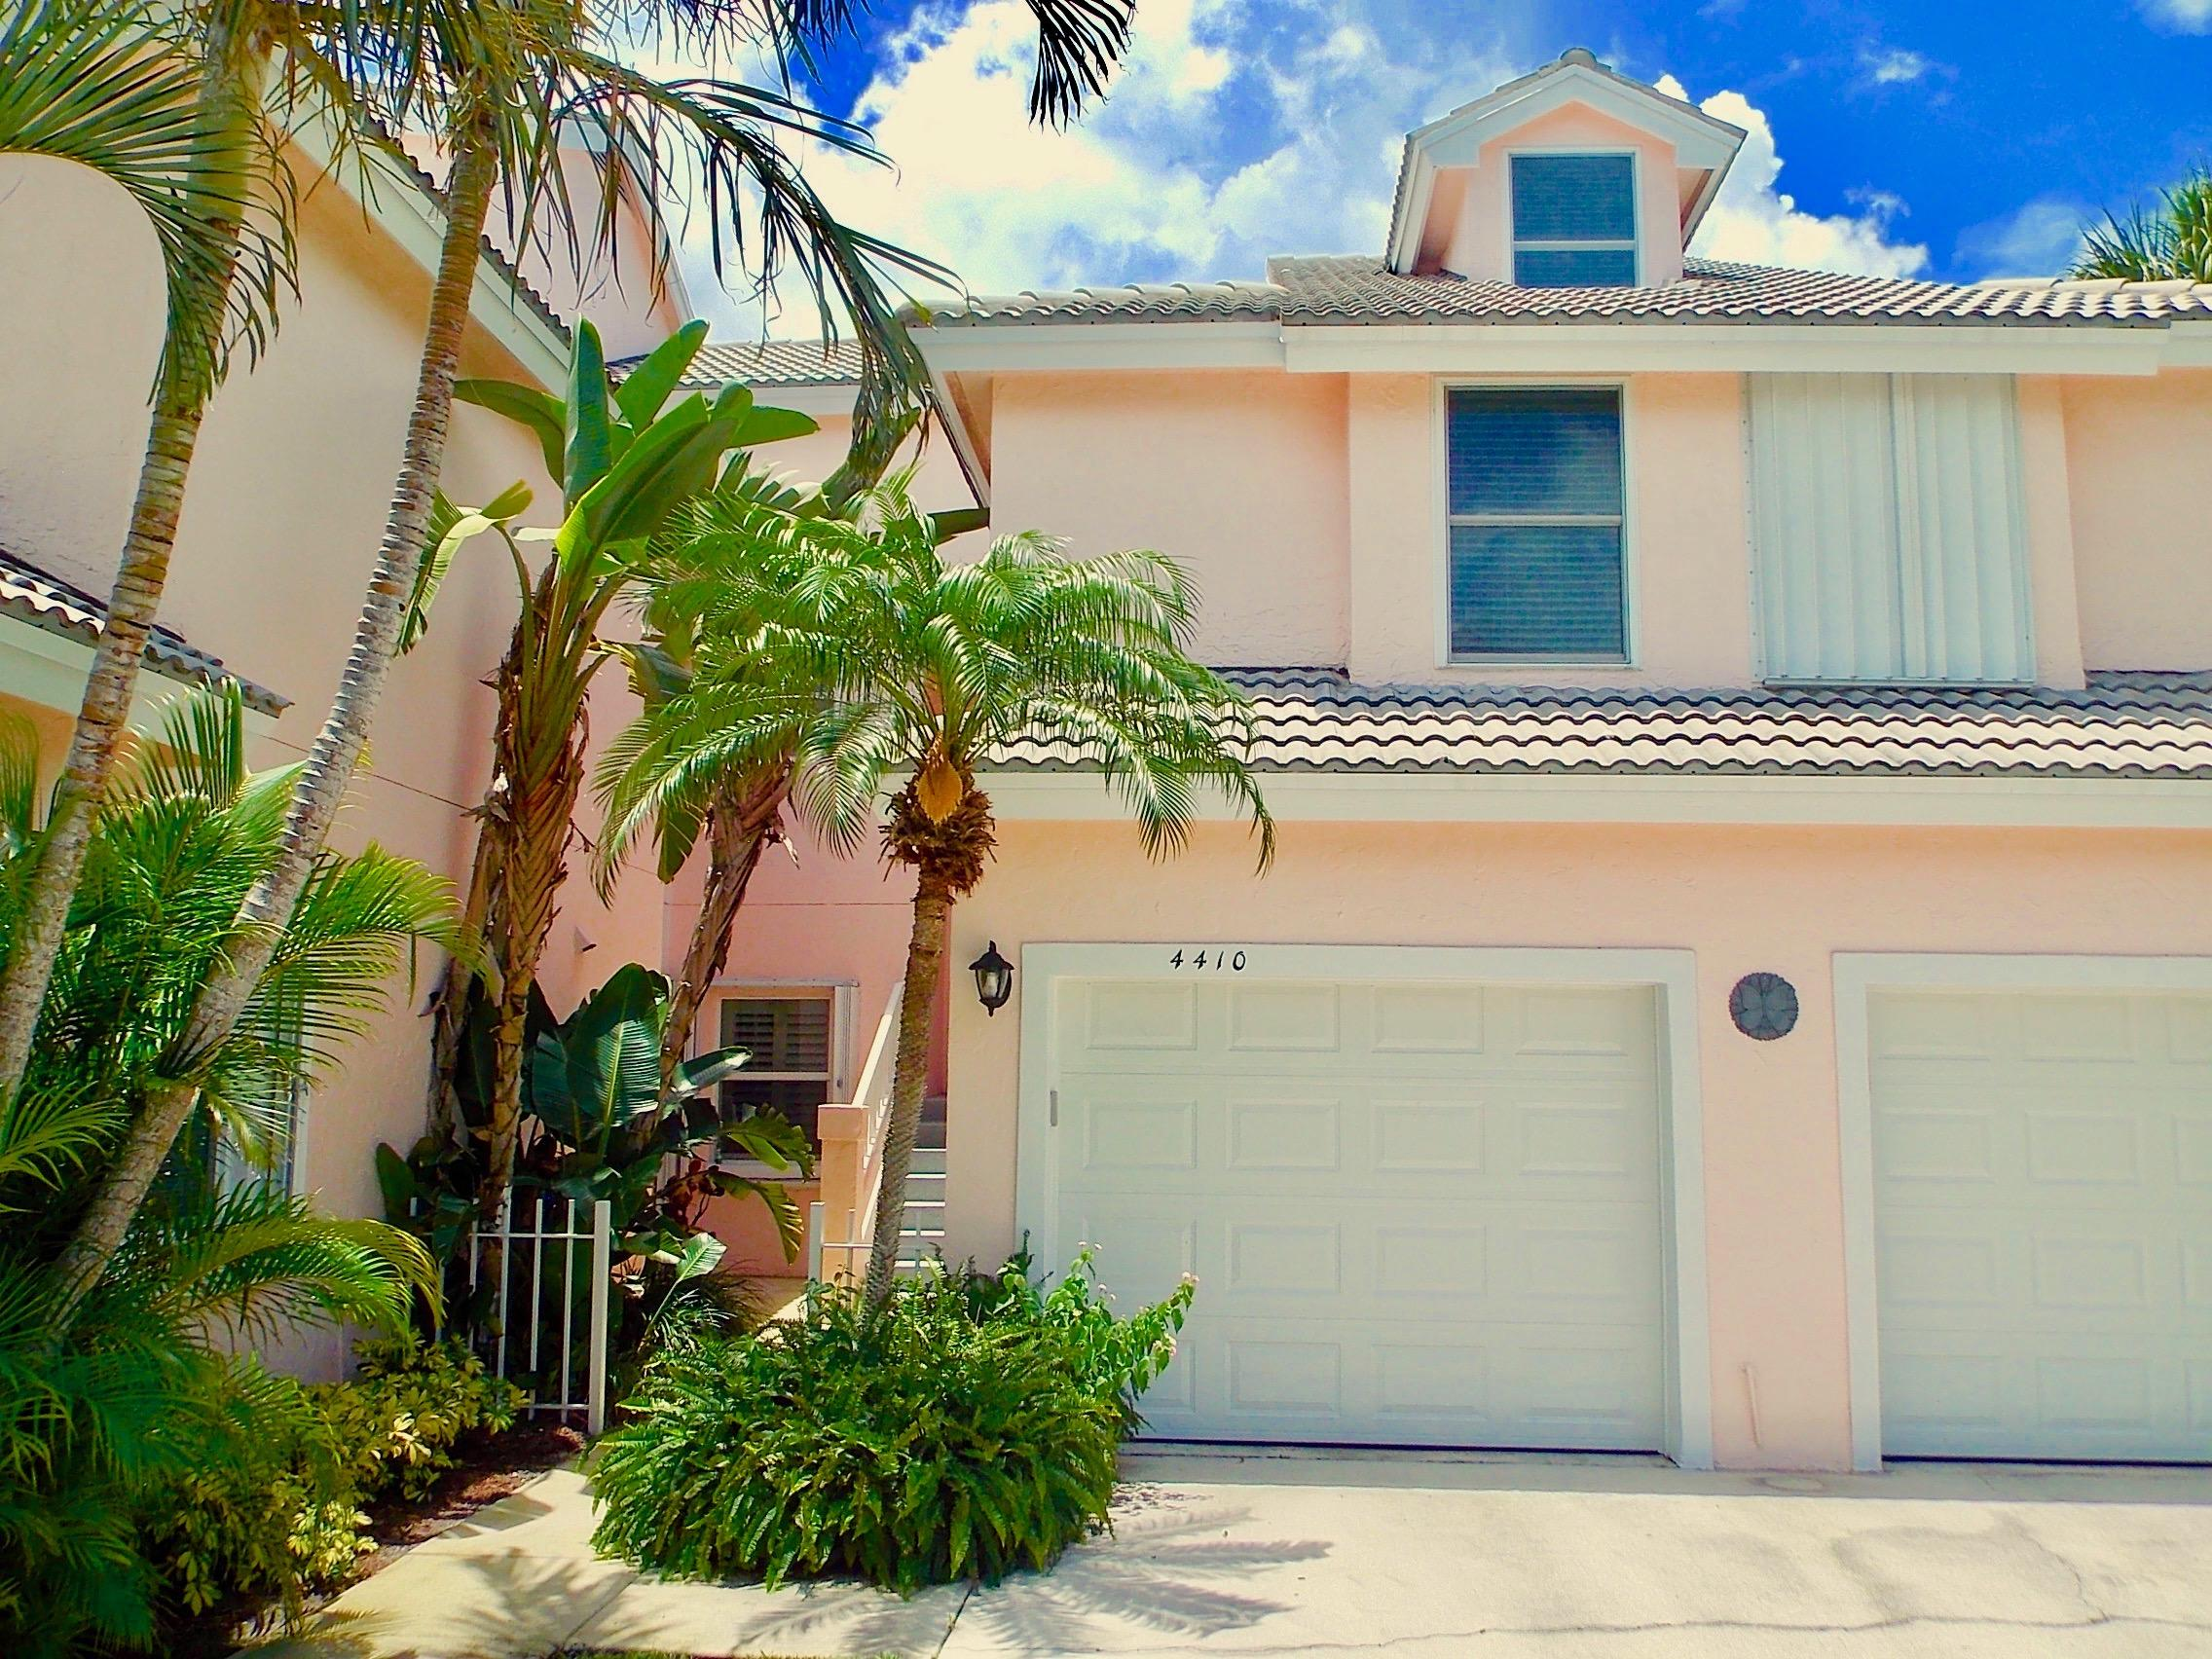 4410 Fairway Drive, Jupiter, Florida 33477, 2 Bedrooms Bedrooms, ,2 BathroomsBathrooms,F,Condominium,Fairway,RX-10536476